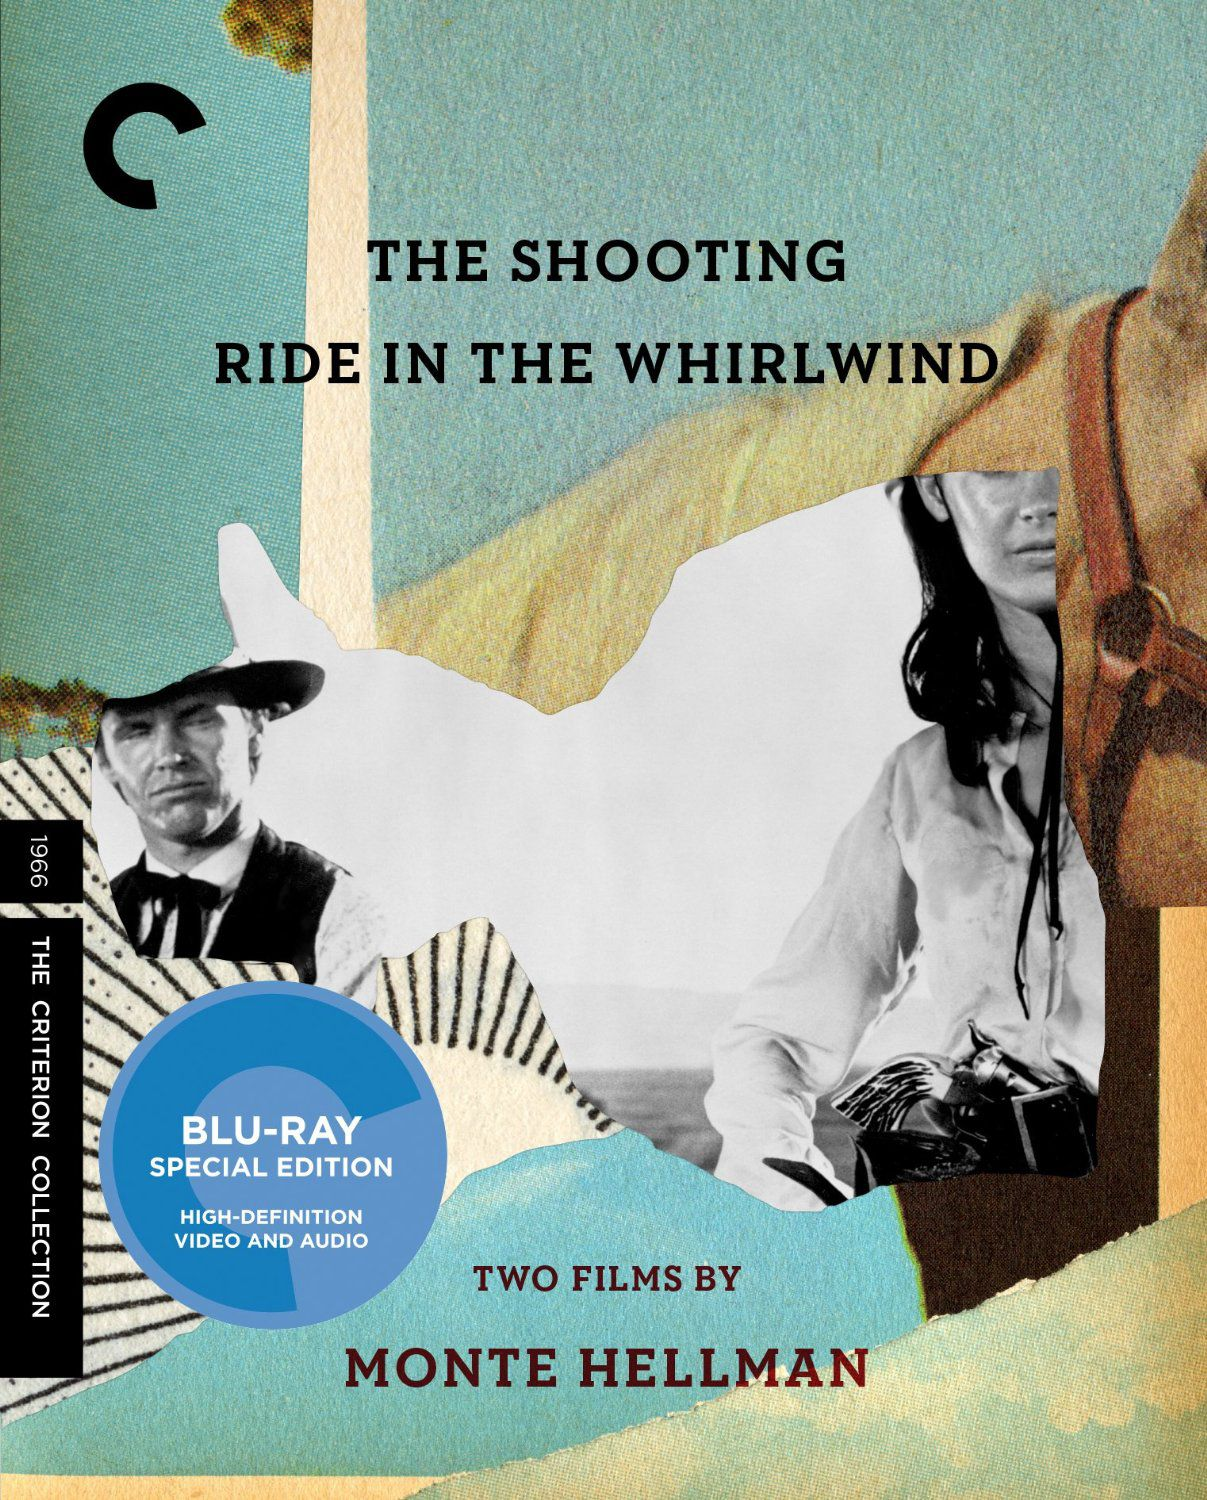 The Shooting | Ride in the Whirlwind